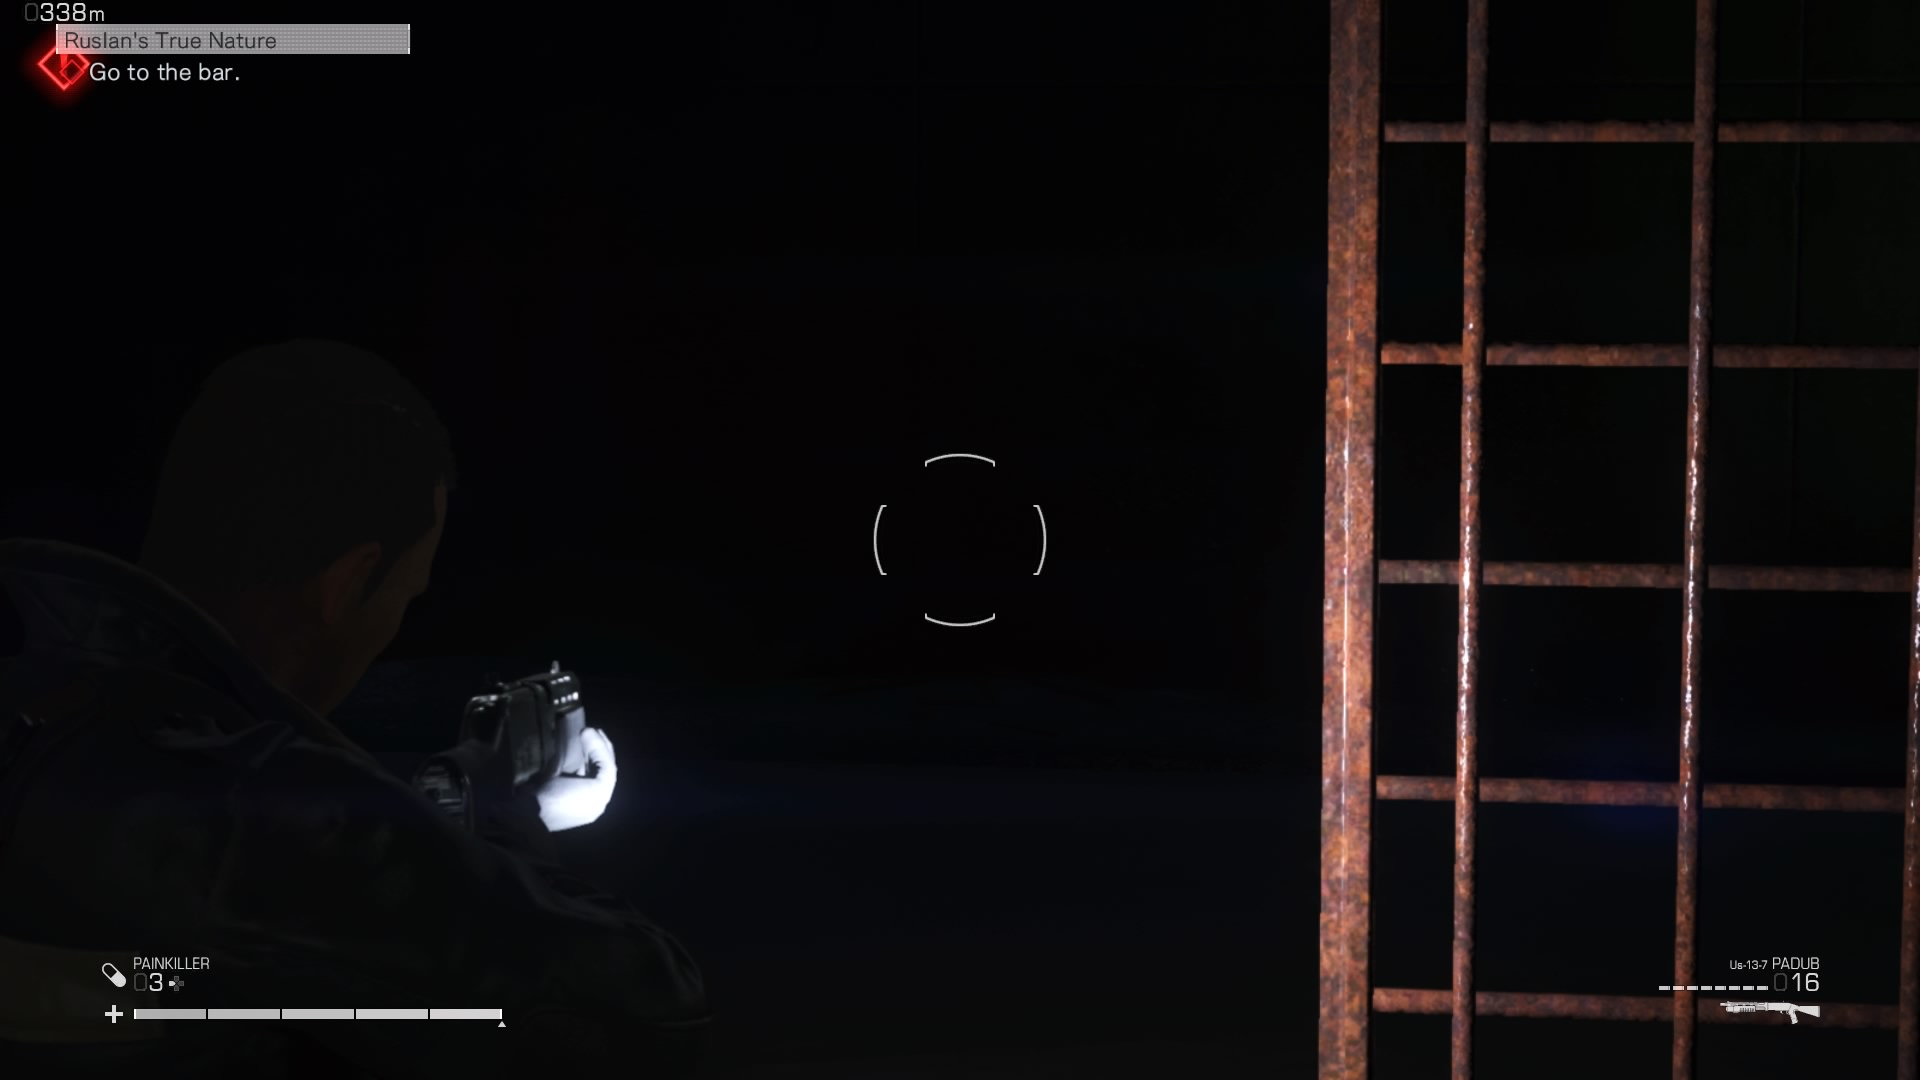 The game has an unusual lighting problem. And the flashlight attached to your character doesn't cut it as a light source.